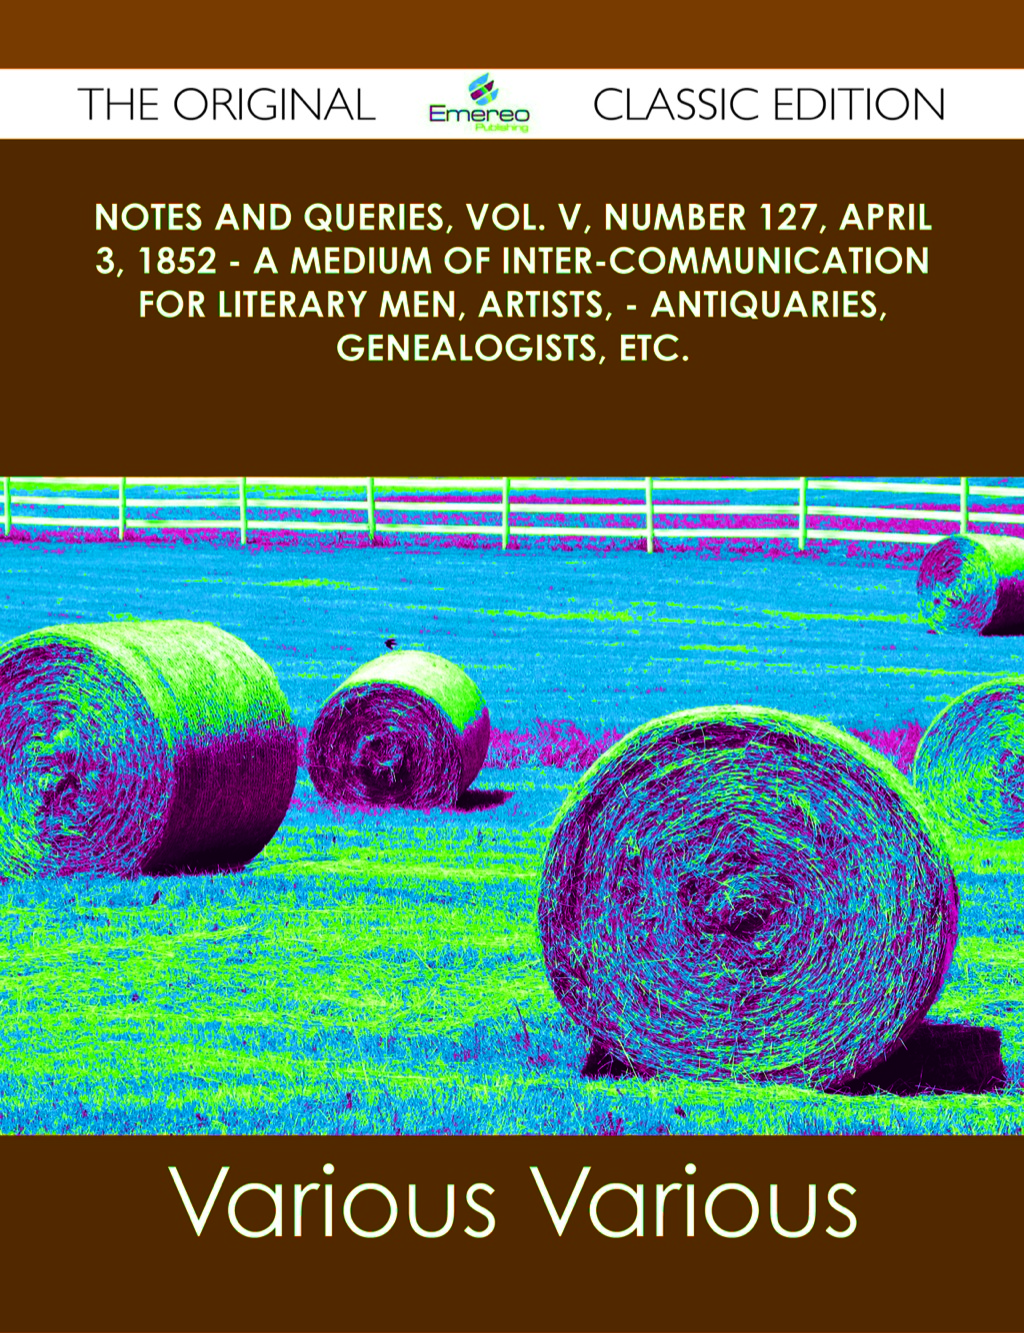 Notes and Queries, Vol. V, Number 127, April 3, 1852 - A Medium of Inter-communication for Literary Men, Artists, - Antiquaries, Genealogists, etc. - The Original Classic Edition (ebook) eBooks